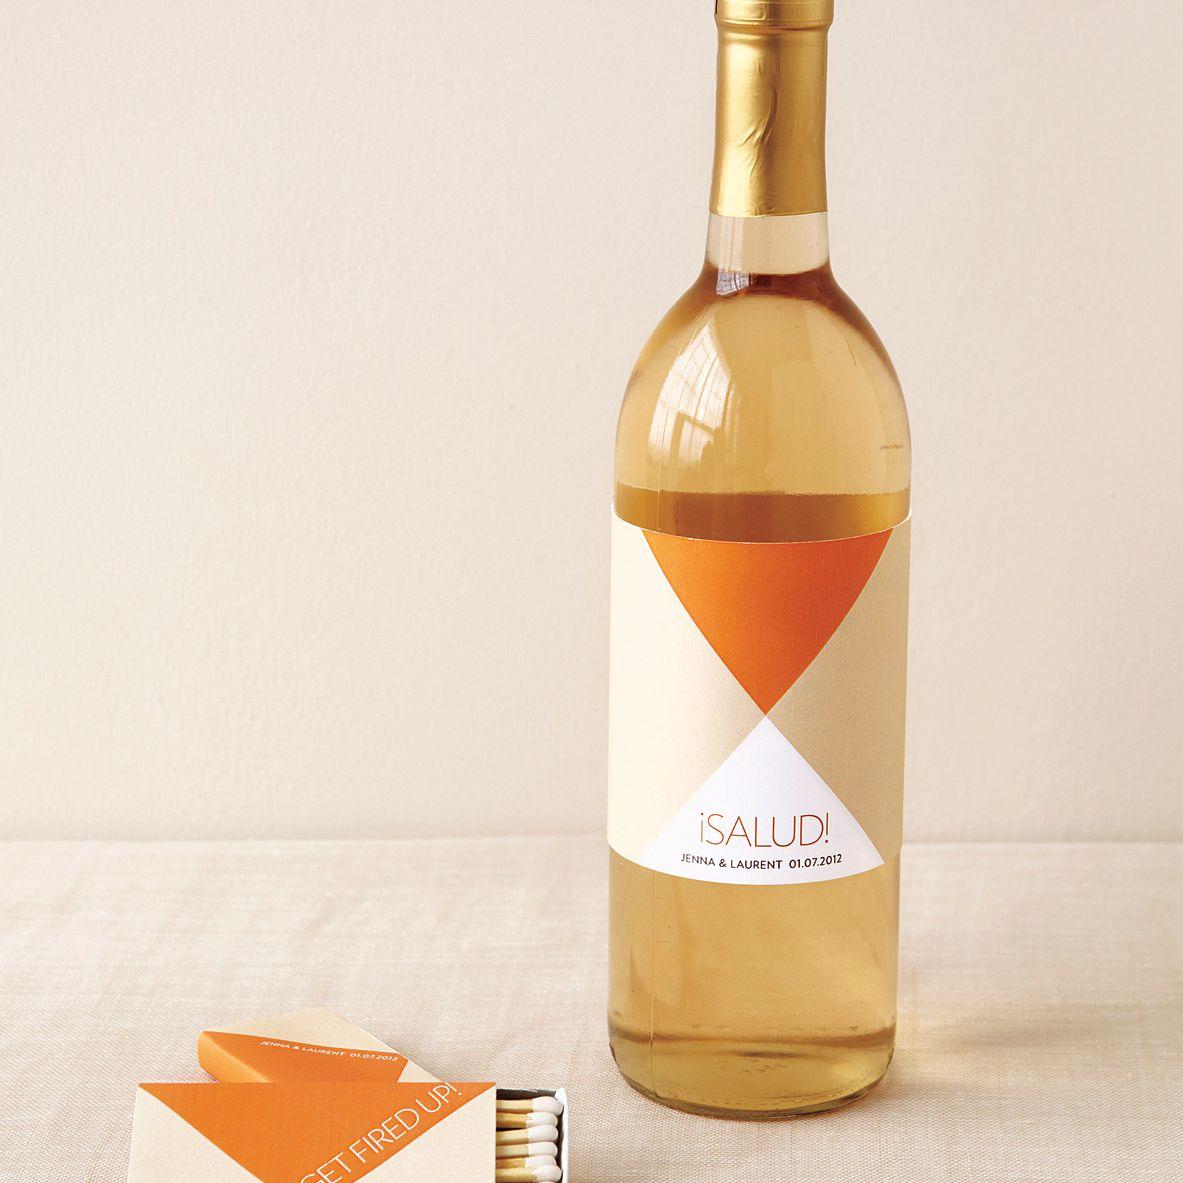 A orange and yellow bottle of wine